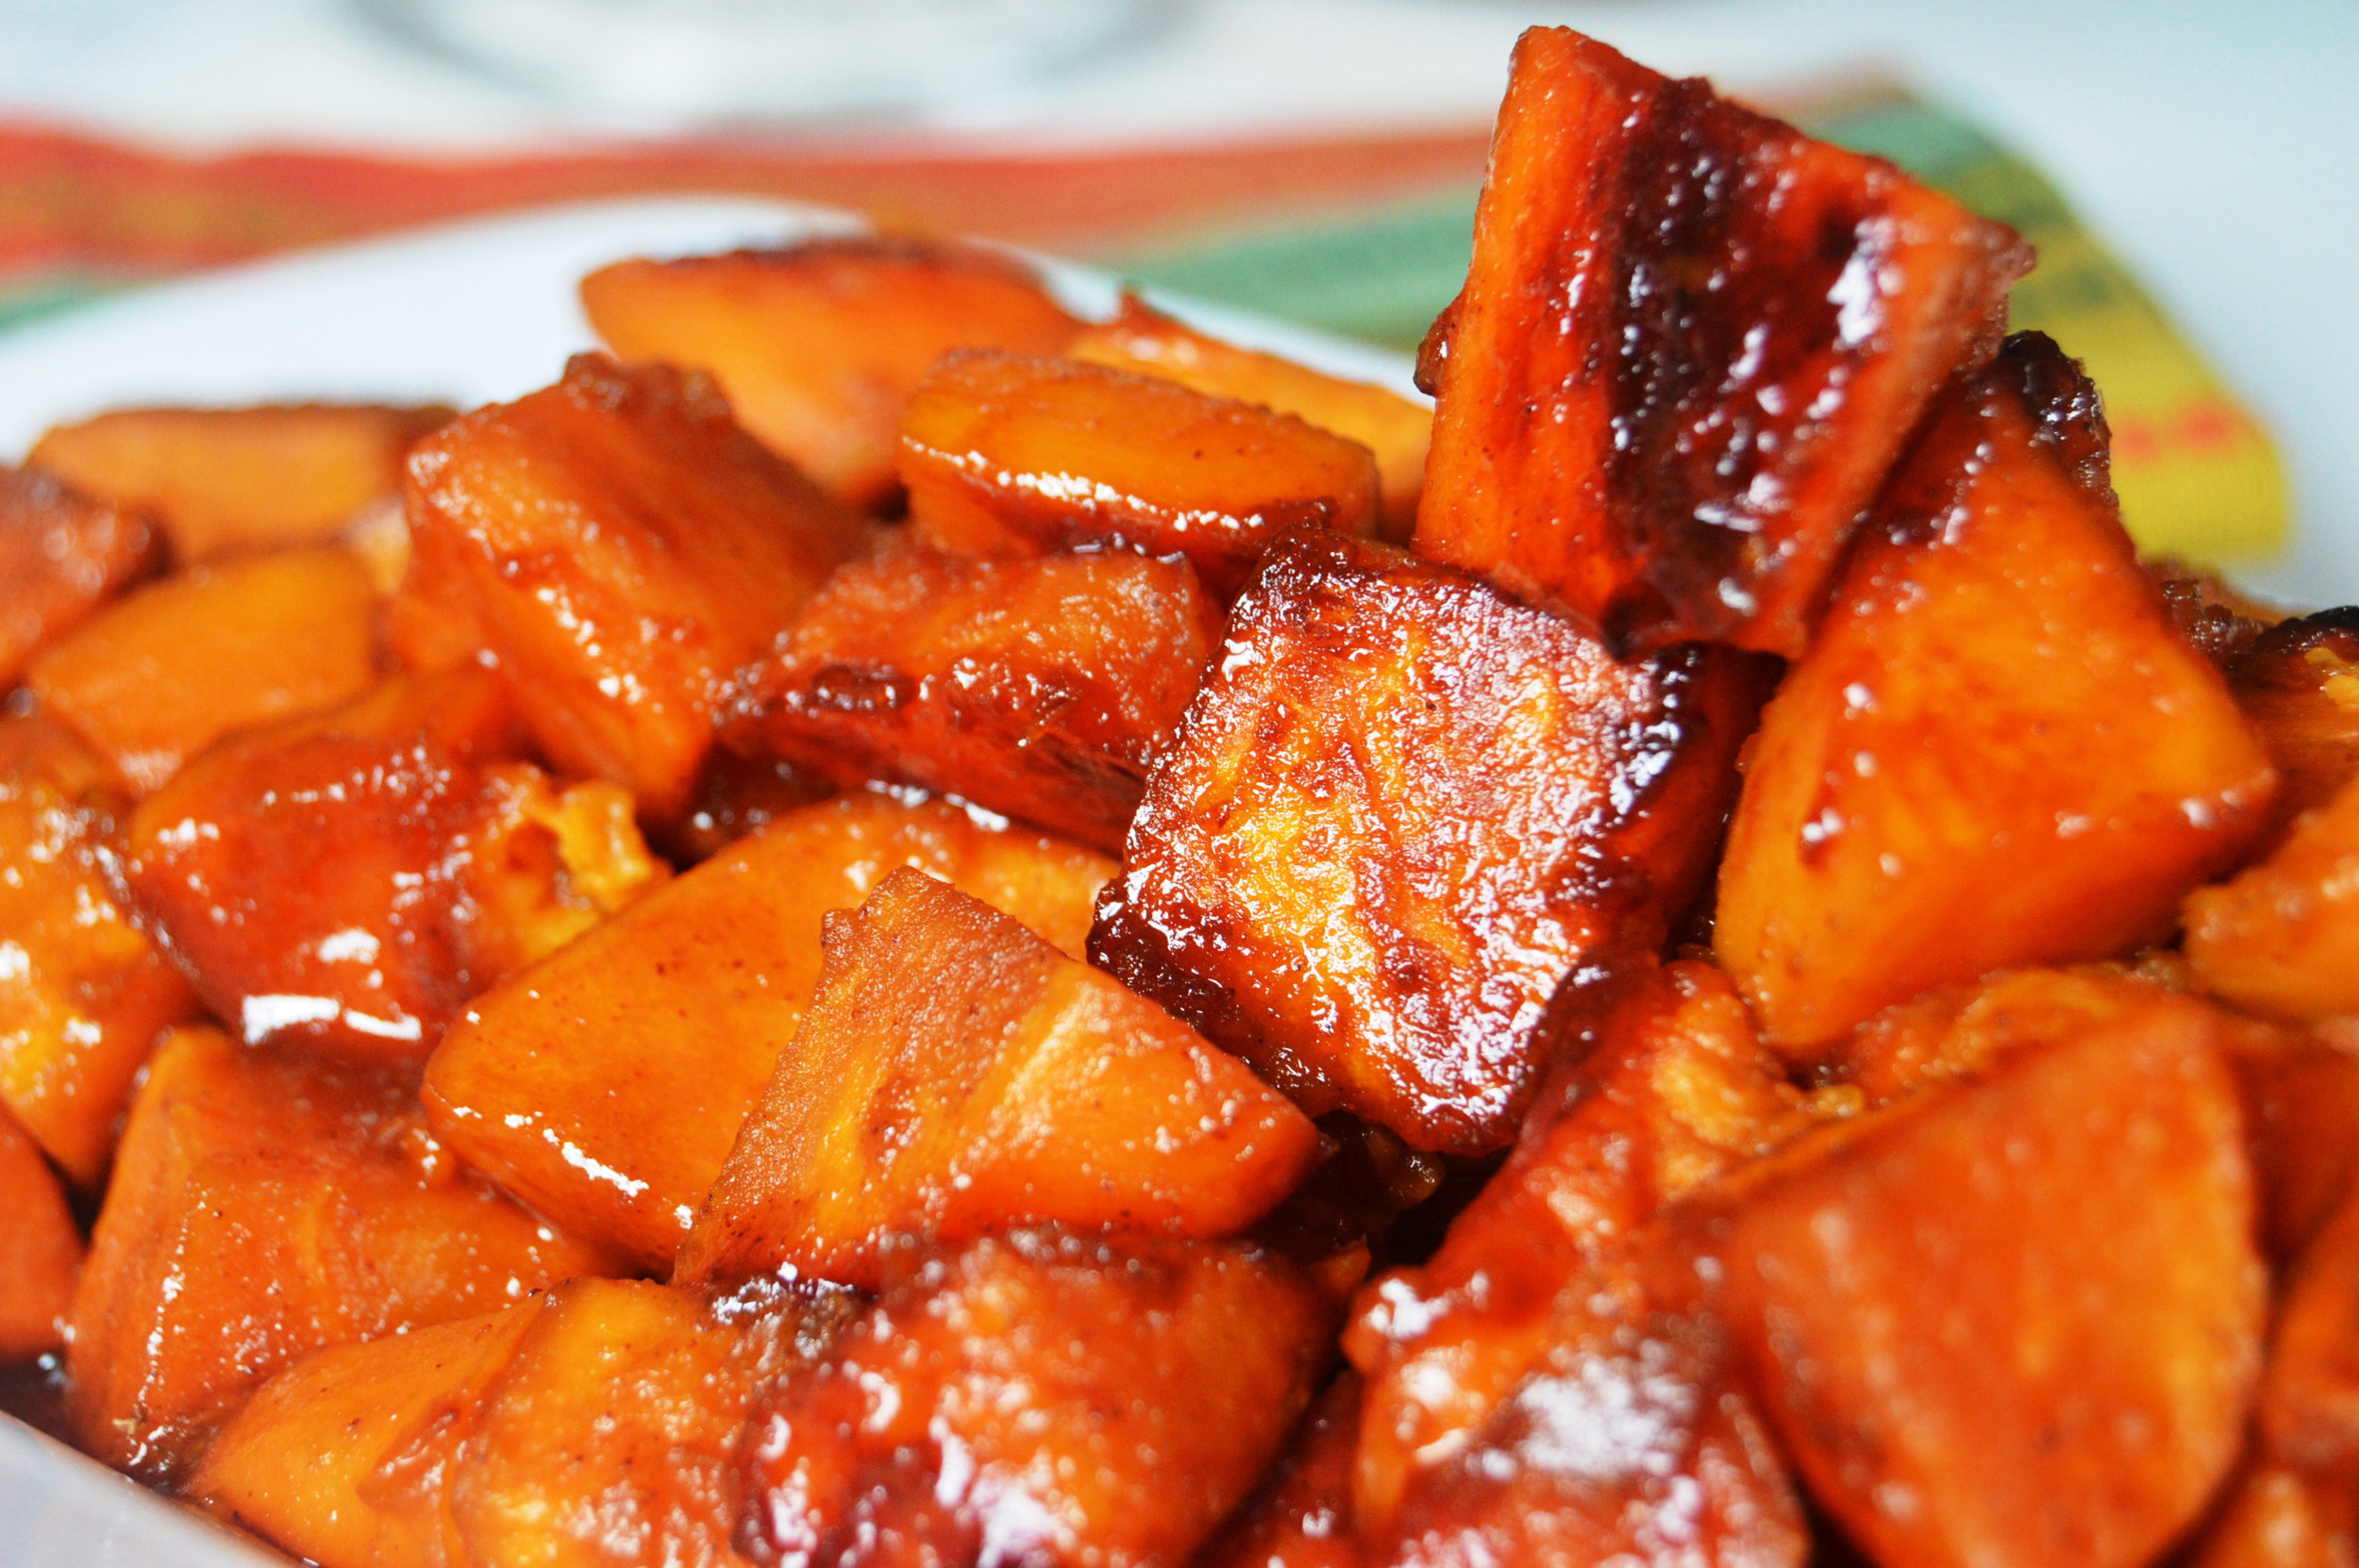 Candied Yams - Photo courtesy of Big Oven